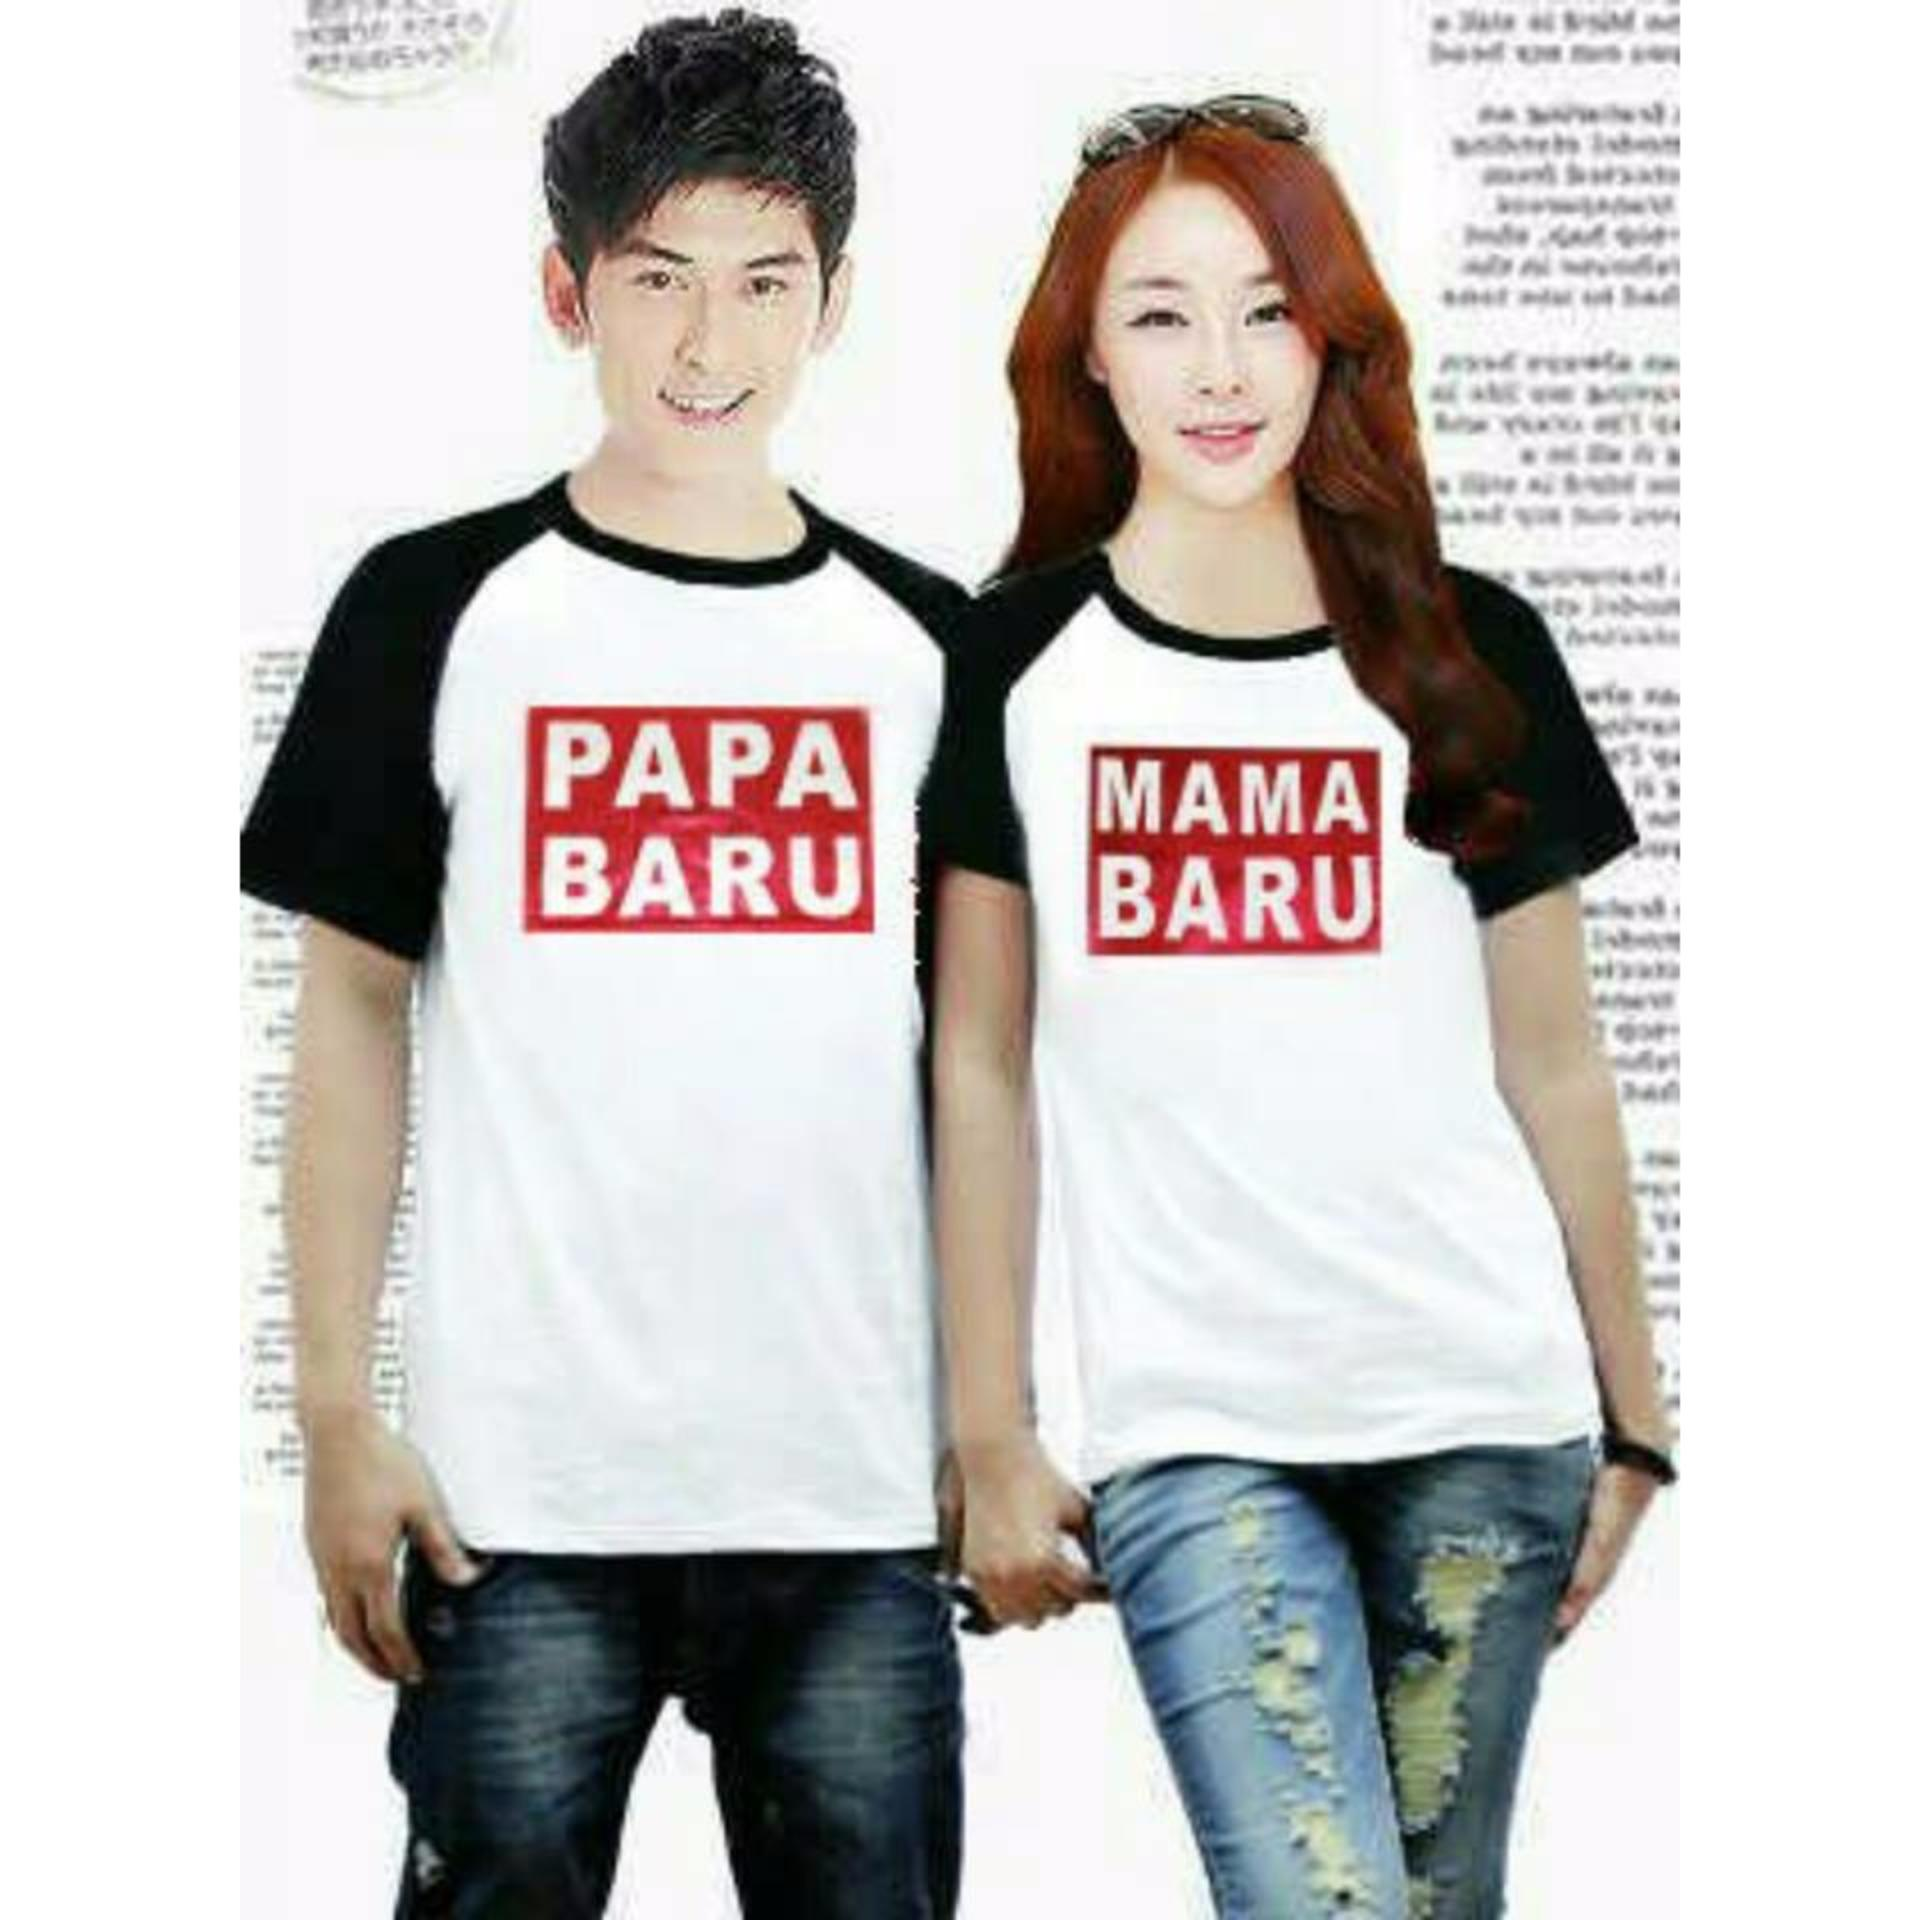 COUPLELOVER- KAOS KAPEL  KAOS COUPLE KIMONO PAPA MAMA BARU WHITE BLACK PD  (PRIA+WANITA)  T-SHIRTS COUPLE  BAJU FASHION  KAOS PASANGAN